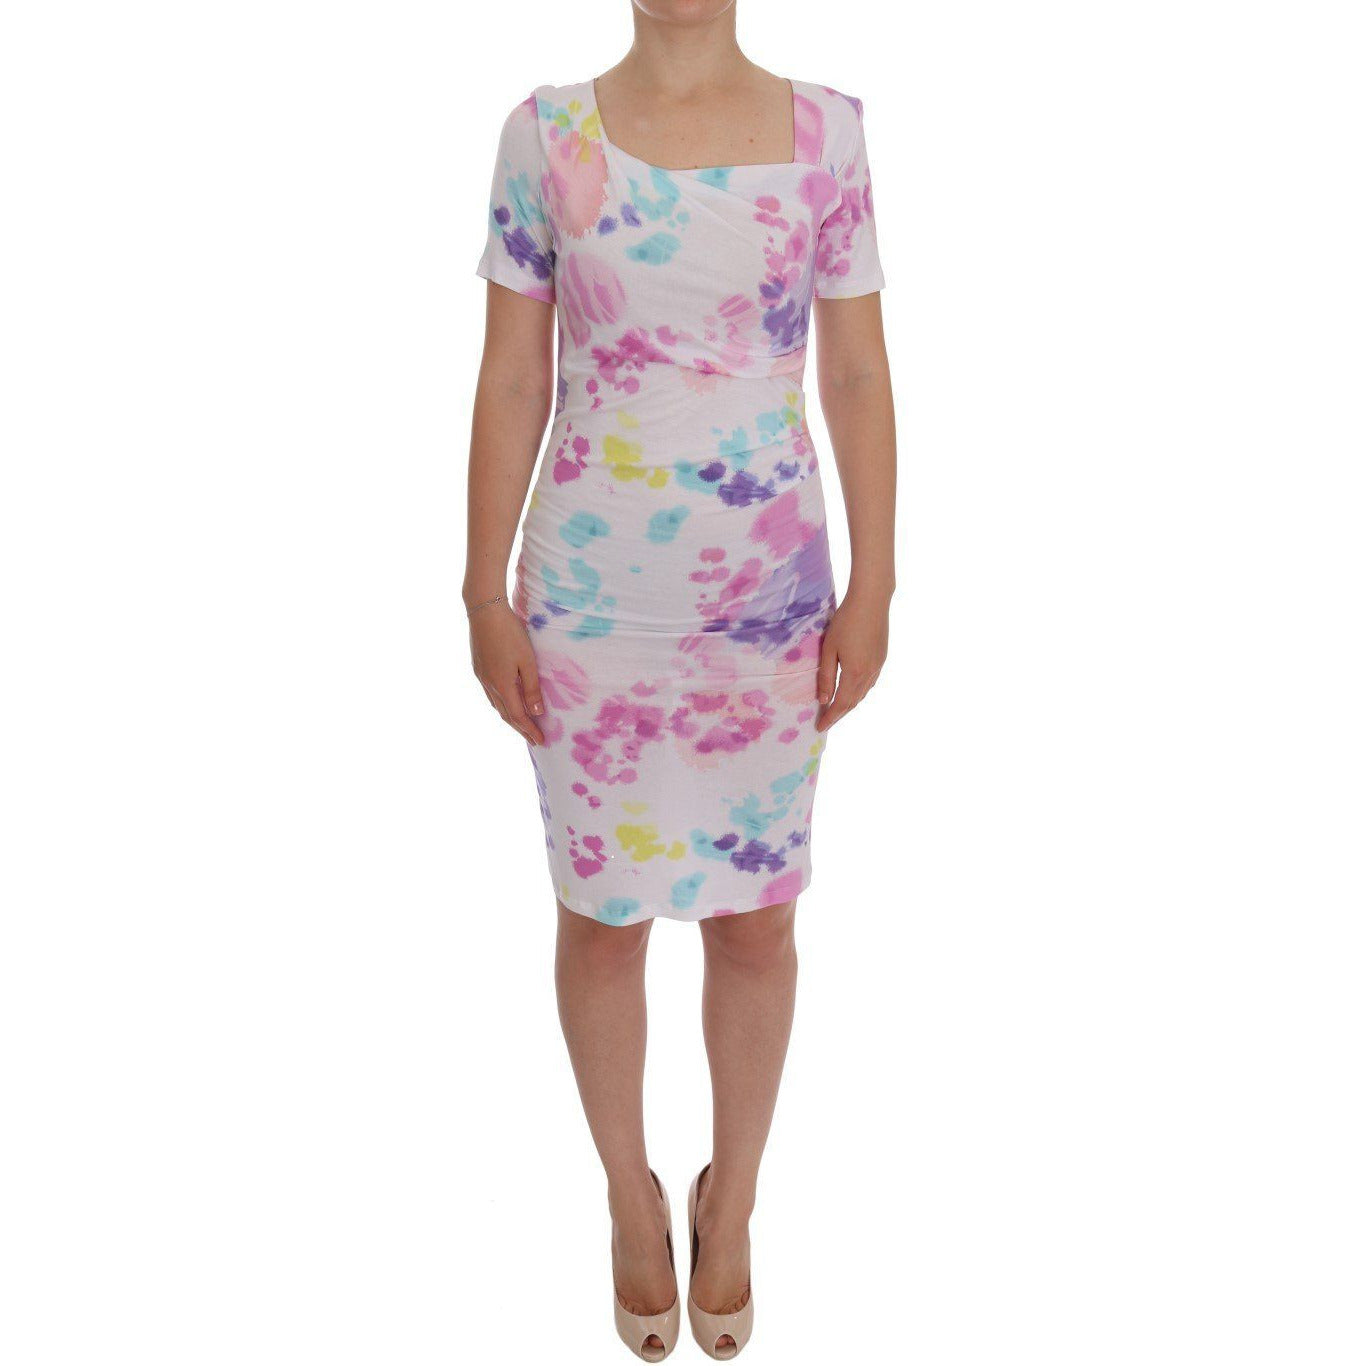 White Printed Pencil Sheath Dress Roccobarocco